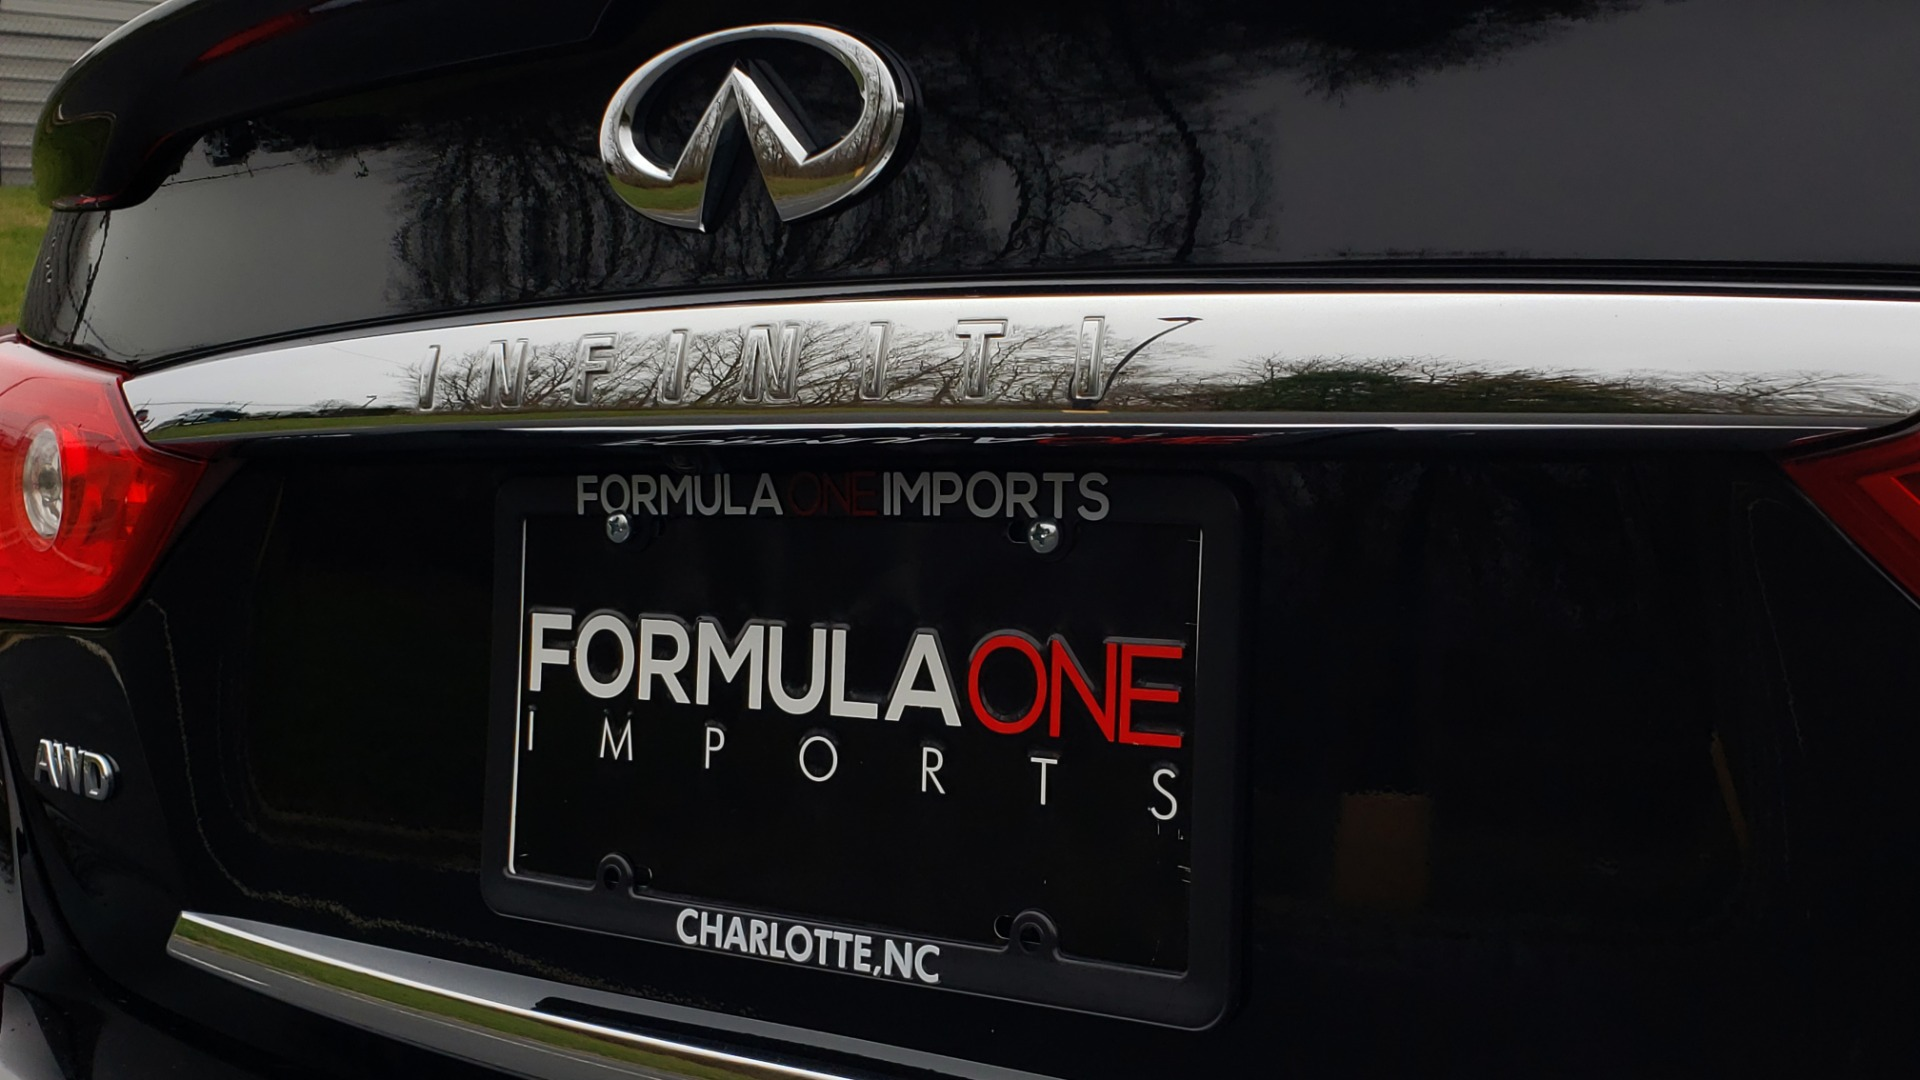 Used 2016 INFINITI Q50 3.0t PREMIUM SPORT AWD / NAV / SUNROOF / HTD STS / REARVIEW for sale Sold at Formula Imports in Charlotte NC 28227 25